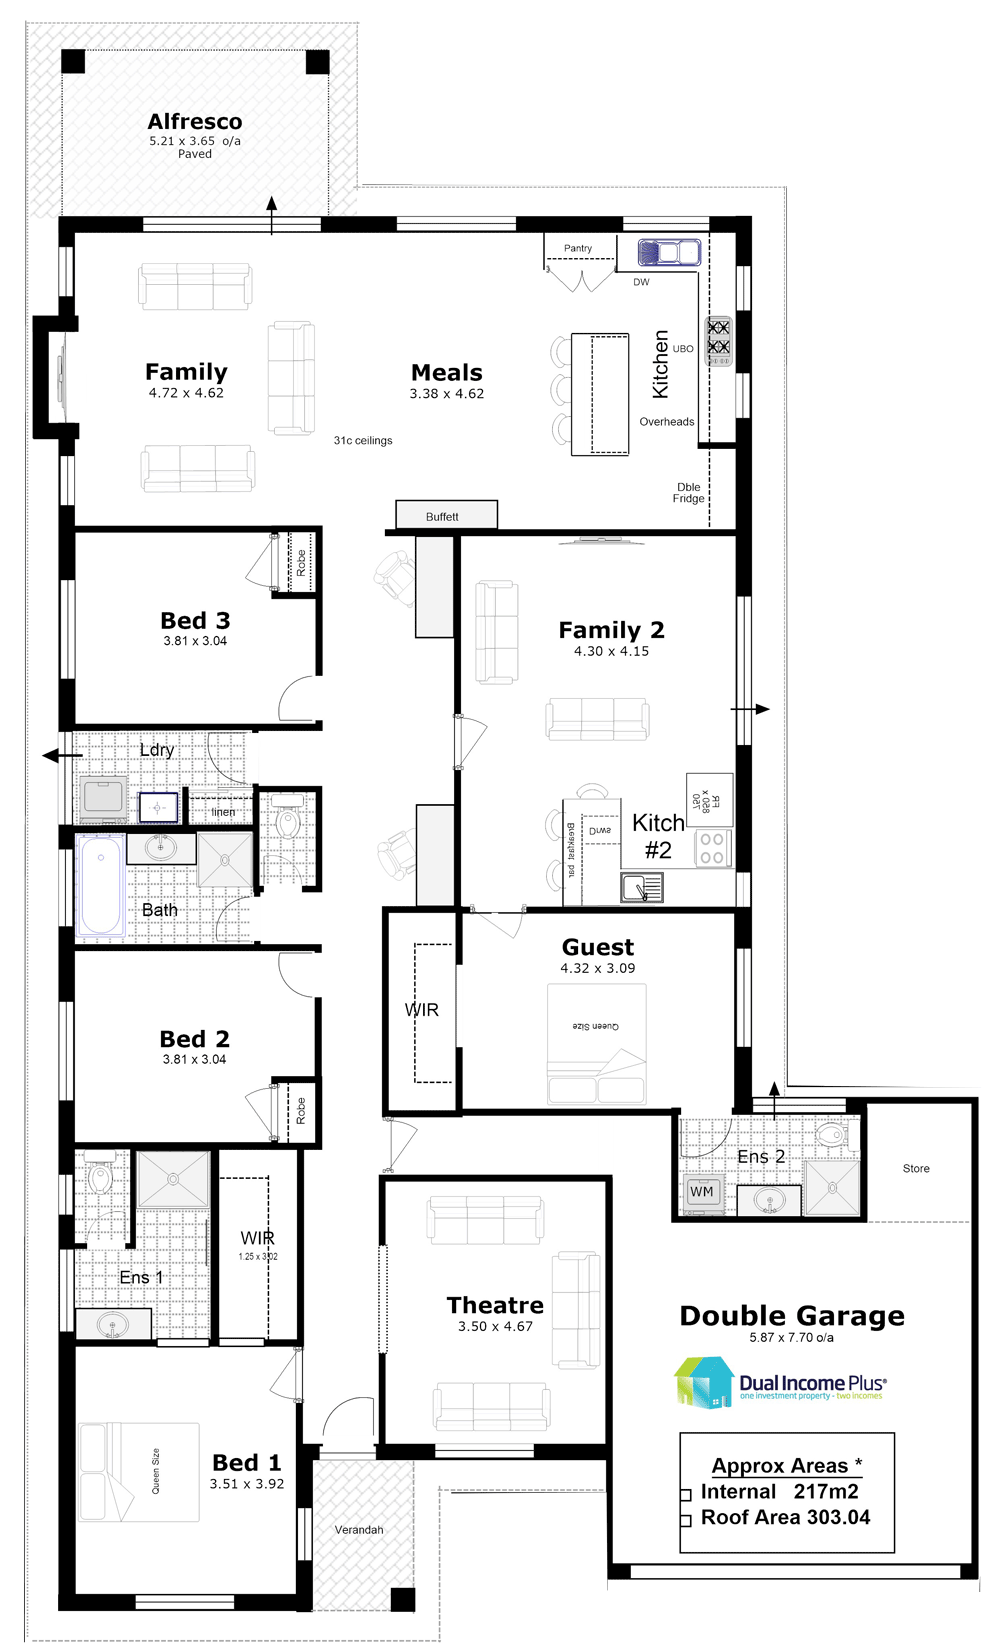 Designs Multi generational home plans